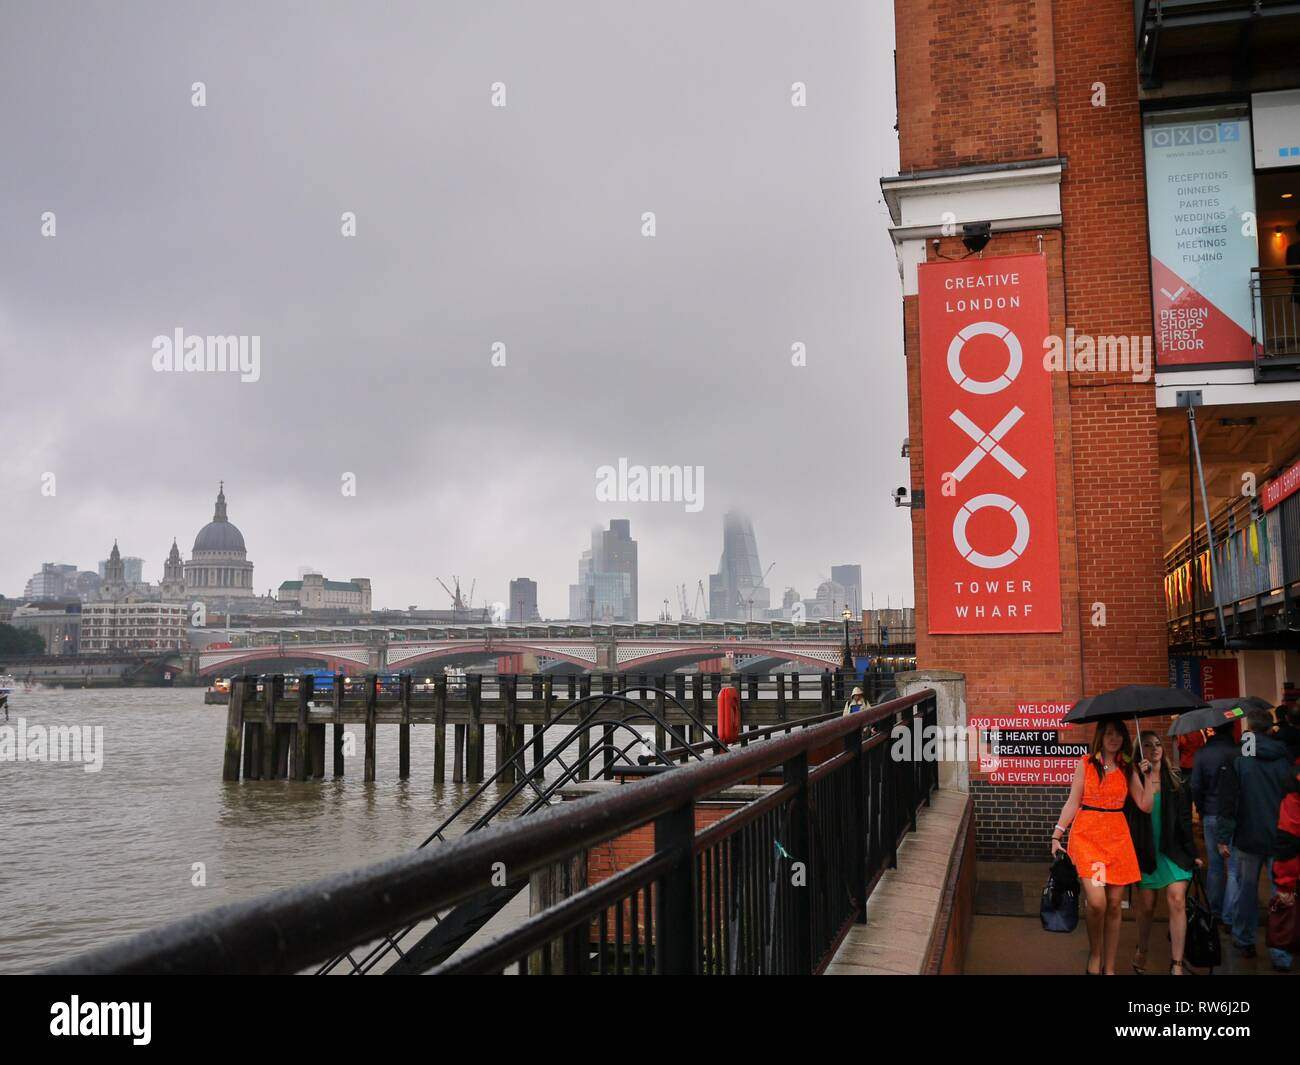 Two ladies dressed for a night out in London pass by the OXO